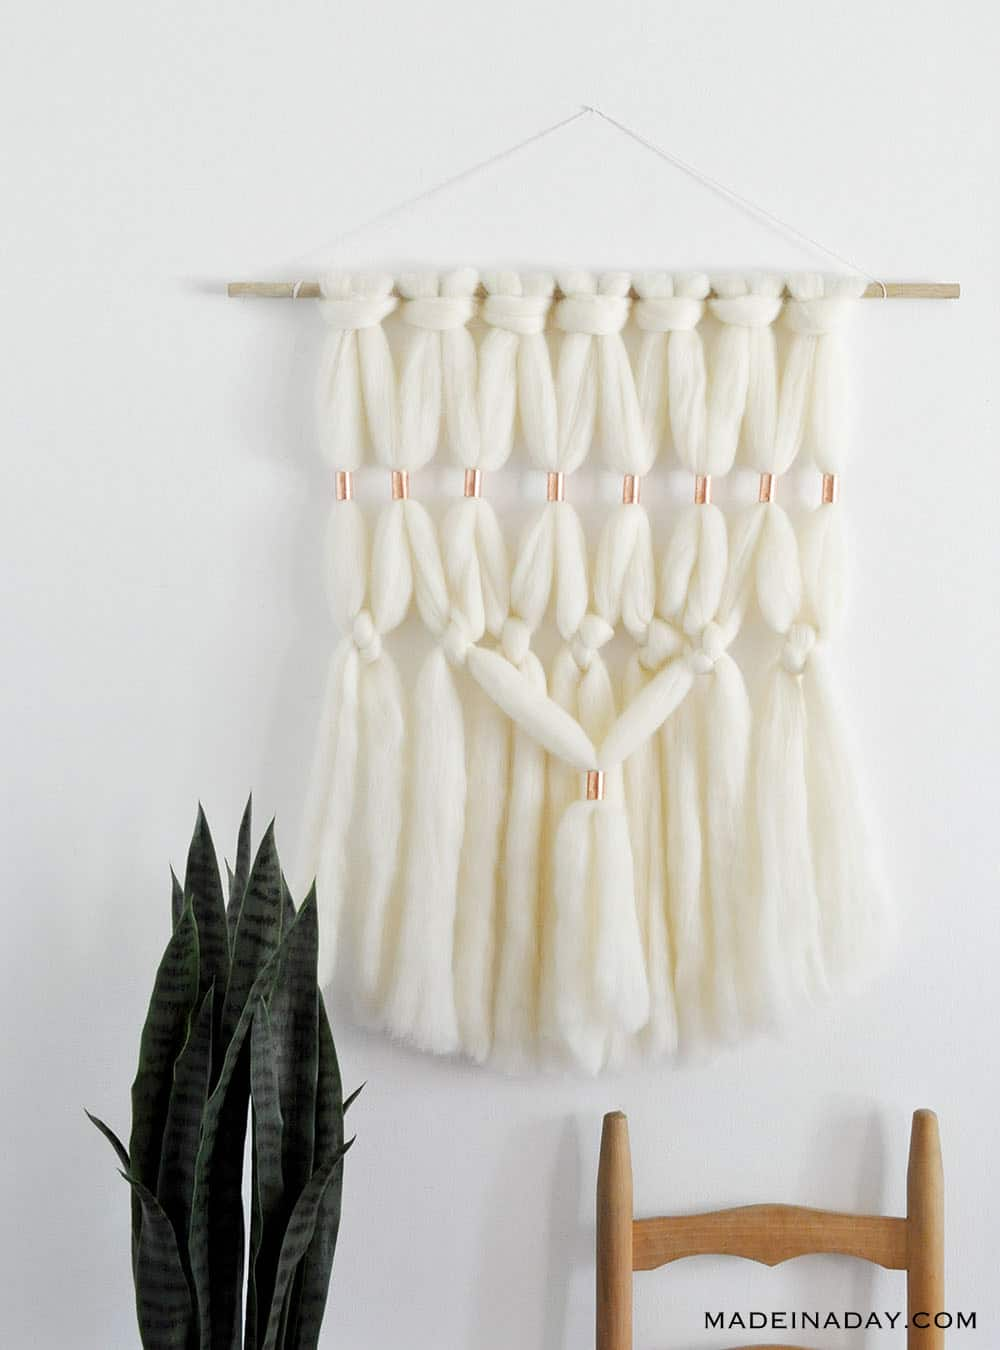 DIY Copper Wool Roving Macrame Wall Hanging